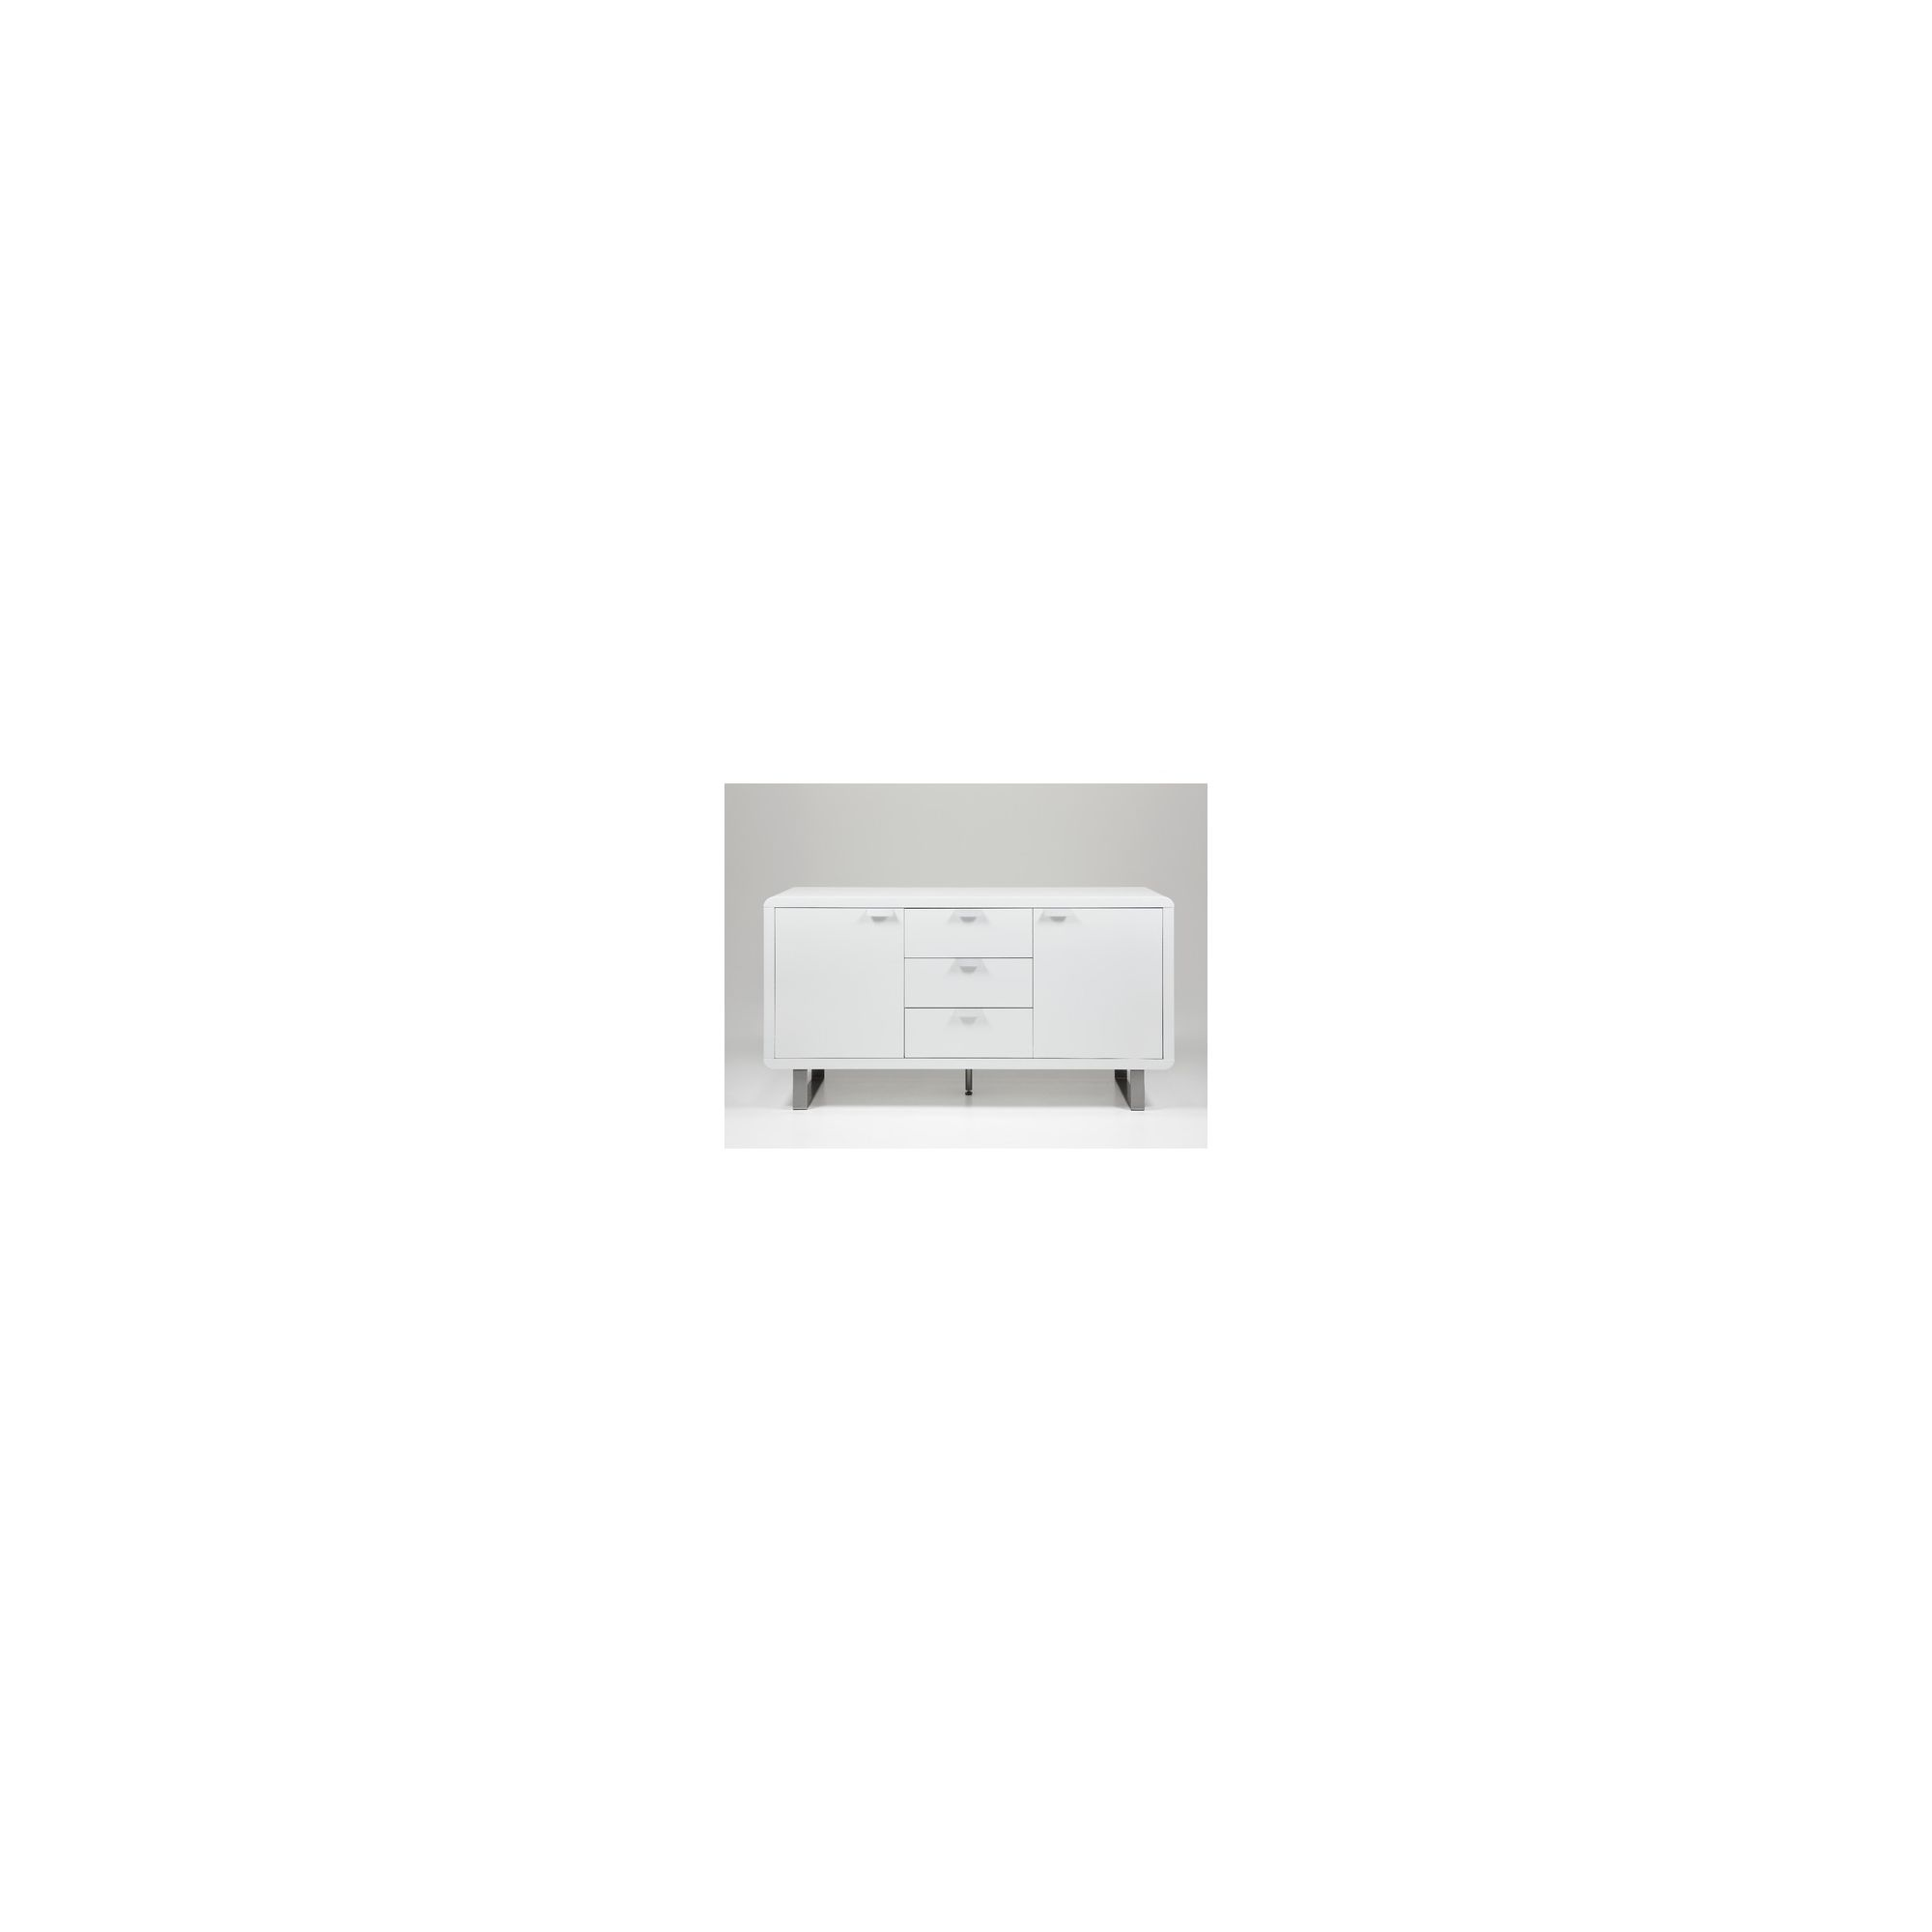 Aspect Design Sleek Sideboard in White at Tesco Direct